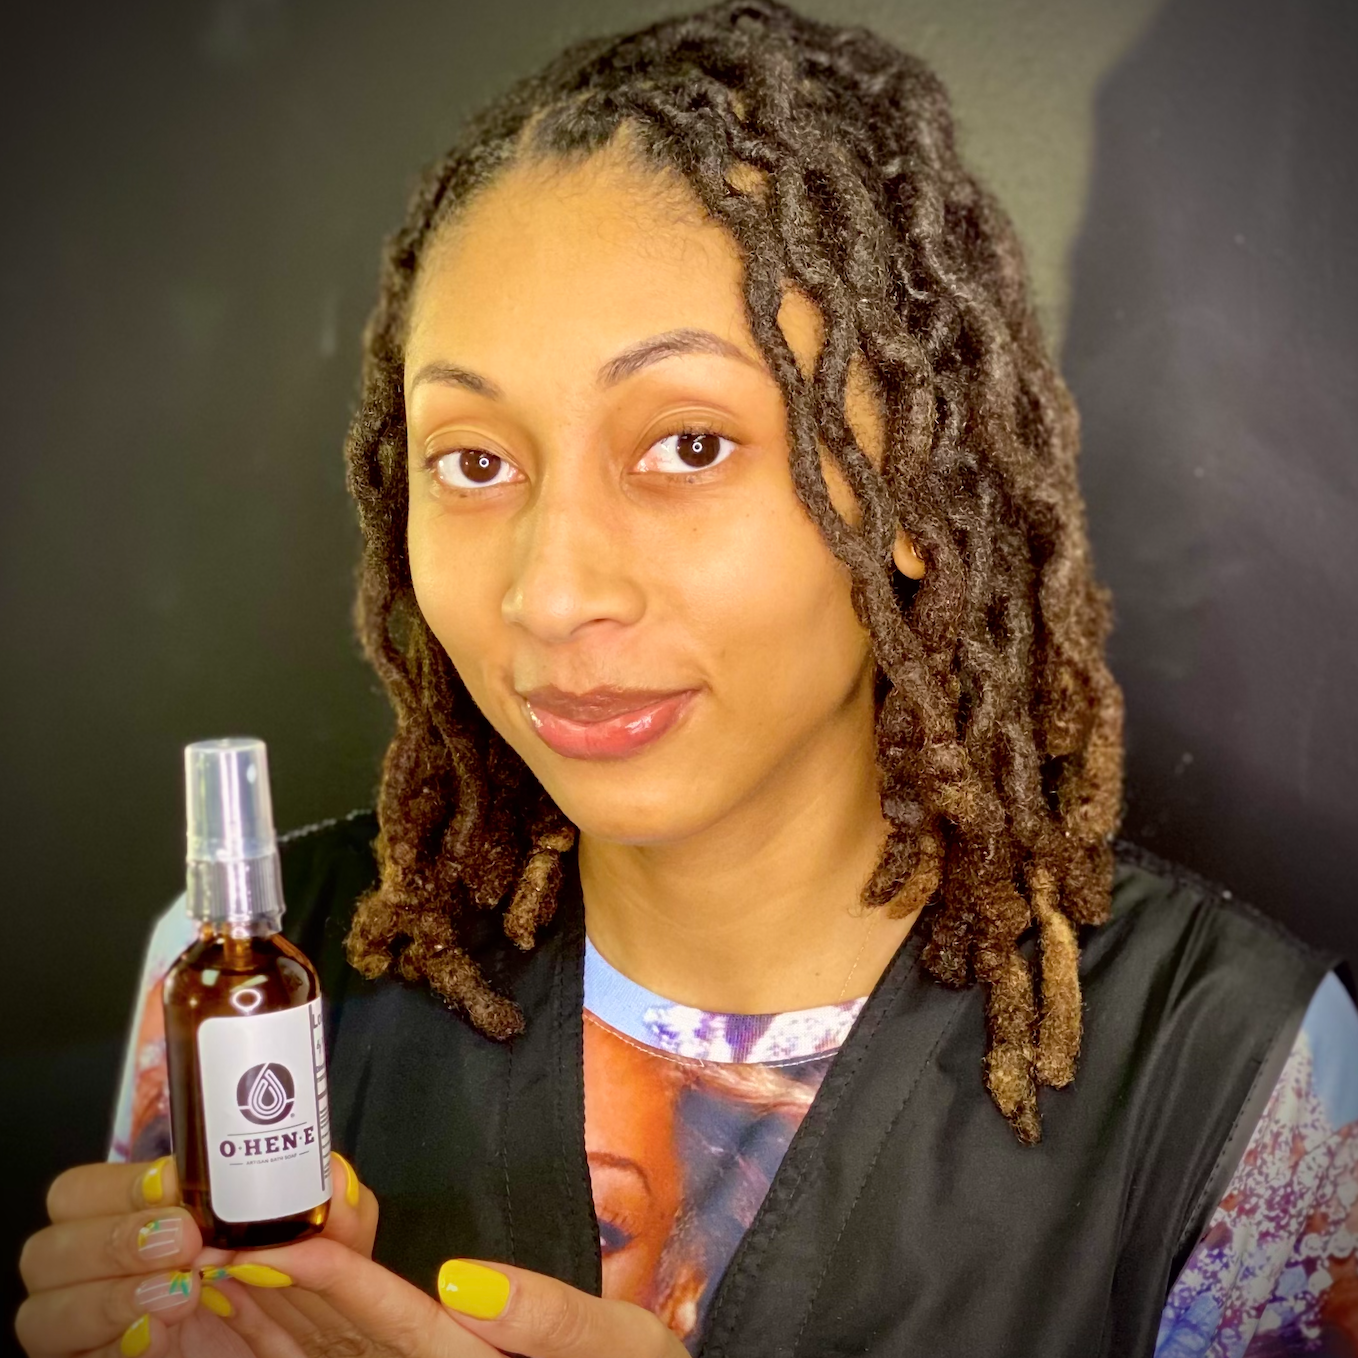 Maya Marchelle poses with OHENE Loc Libation Hair moisturizing oil